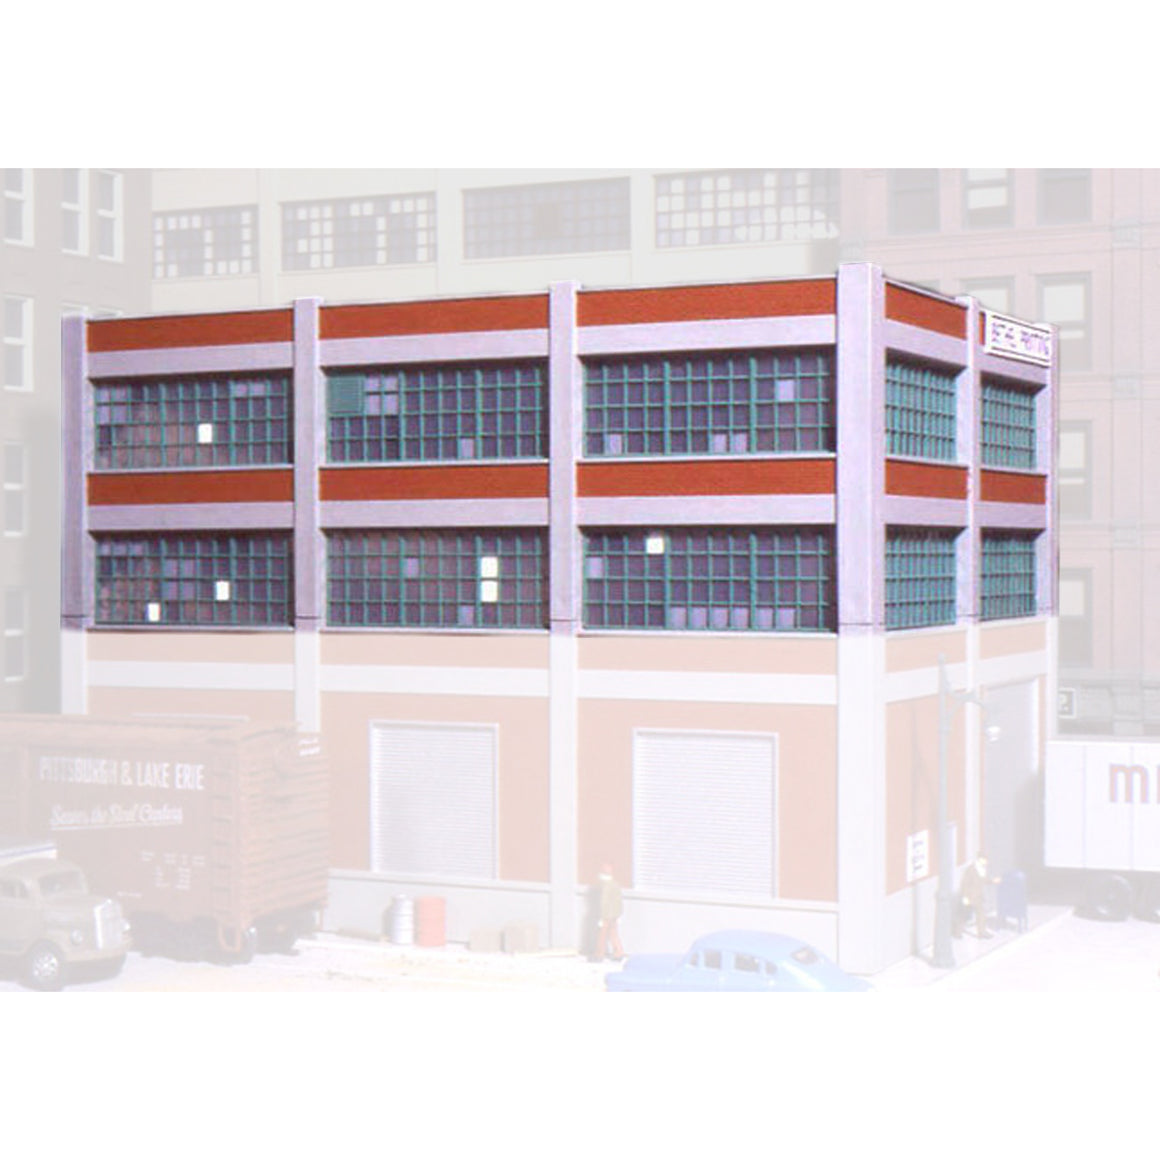 HO Scale: Smallman Street Warehouse 2-Story Add-on Kit